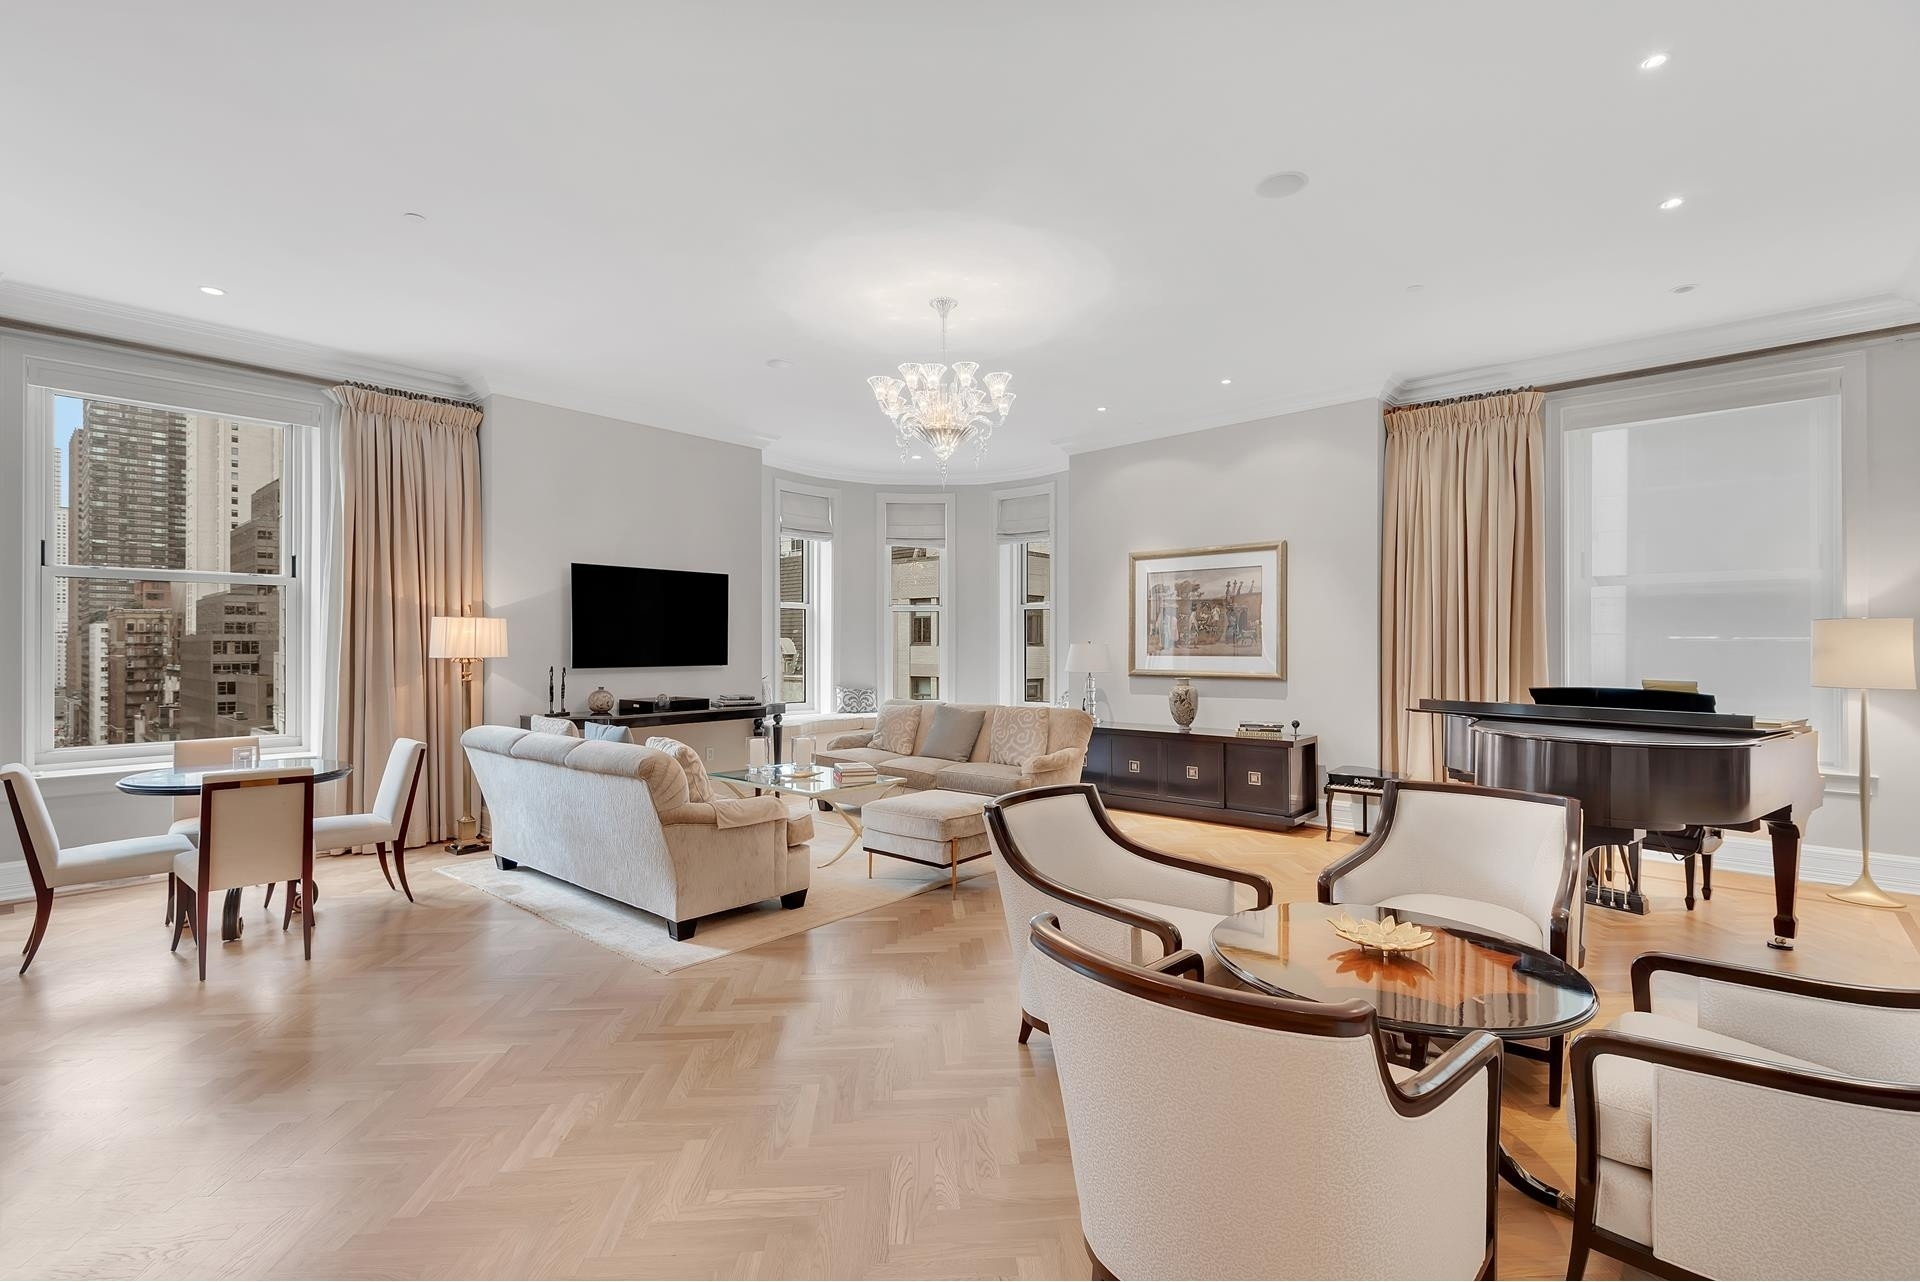 Condominium for Sale at The Plaza Residence, 1 CENTRAL PARK S, 915 Central Park South, New York, NY 10019